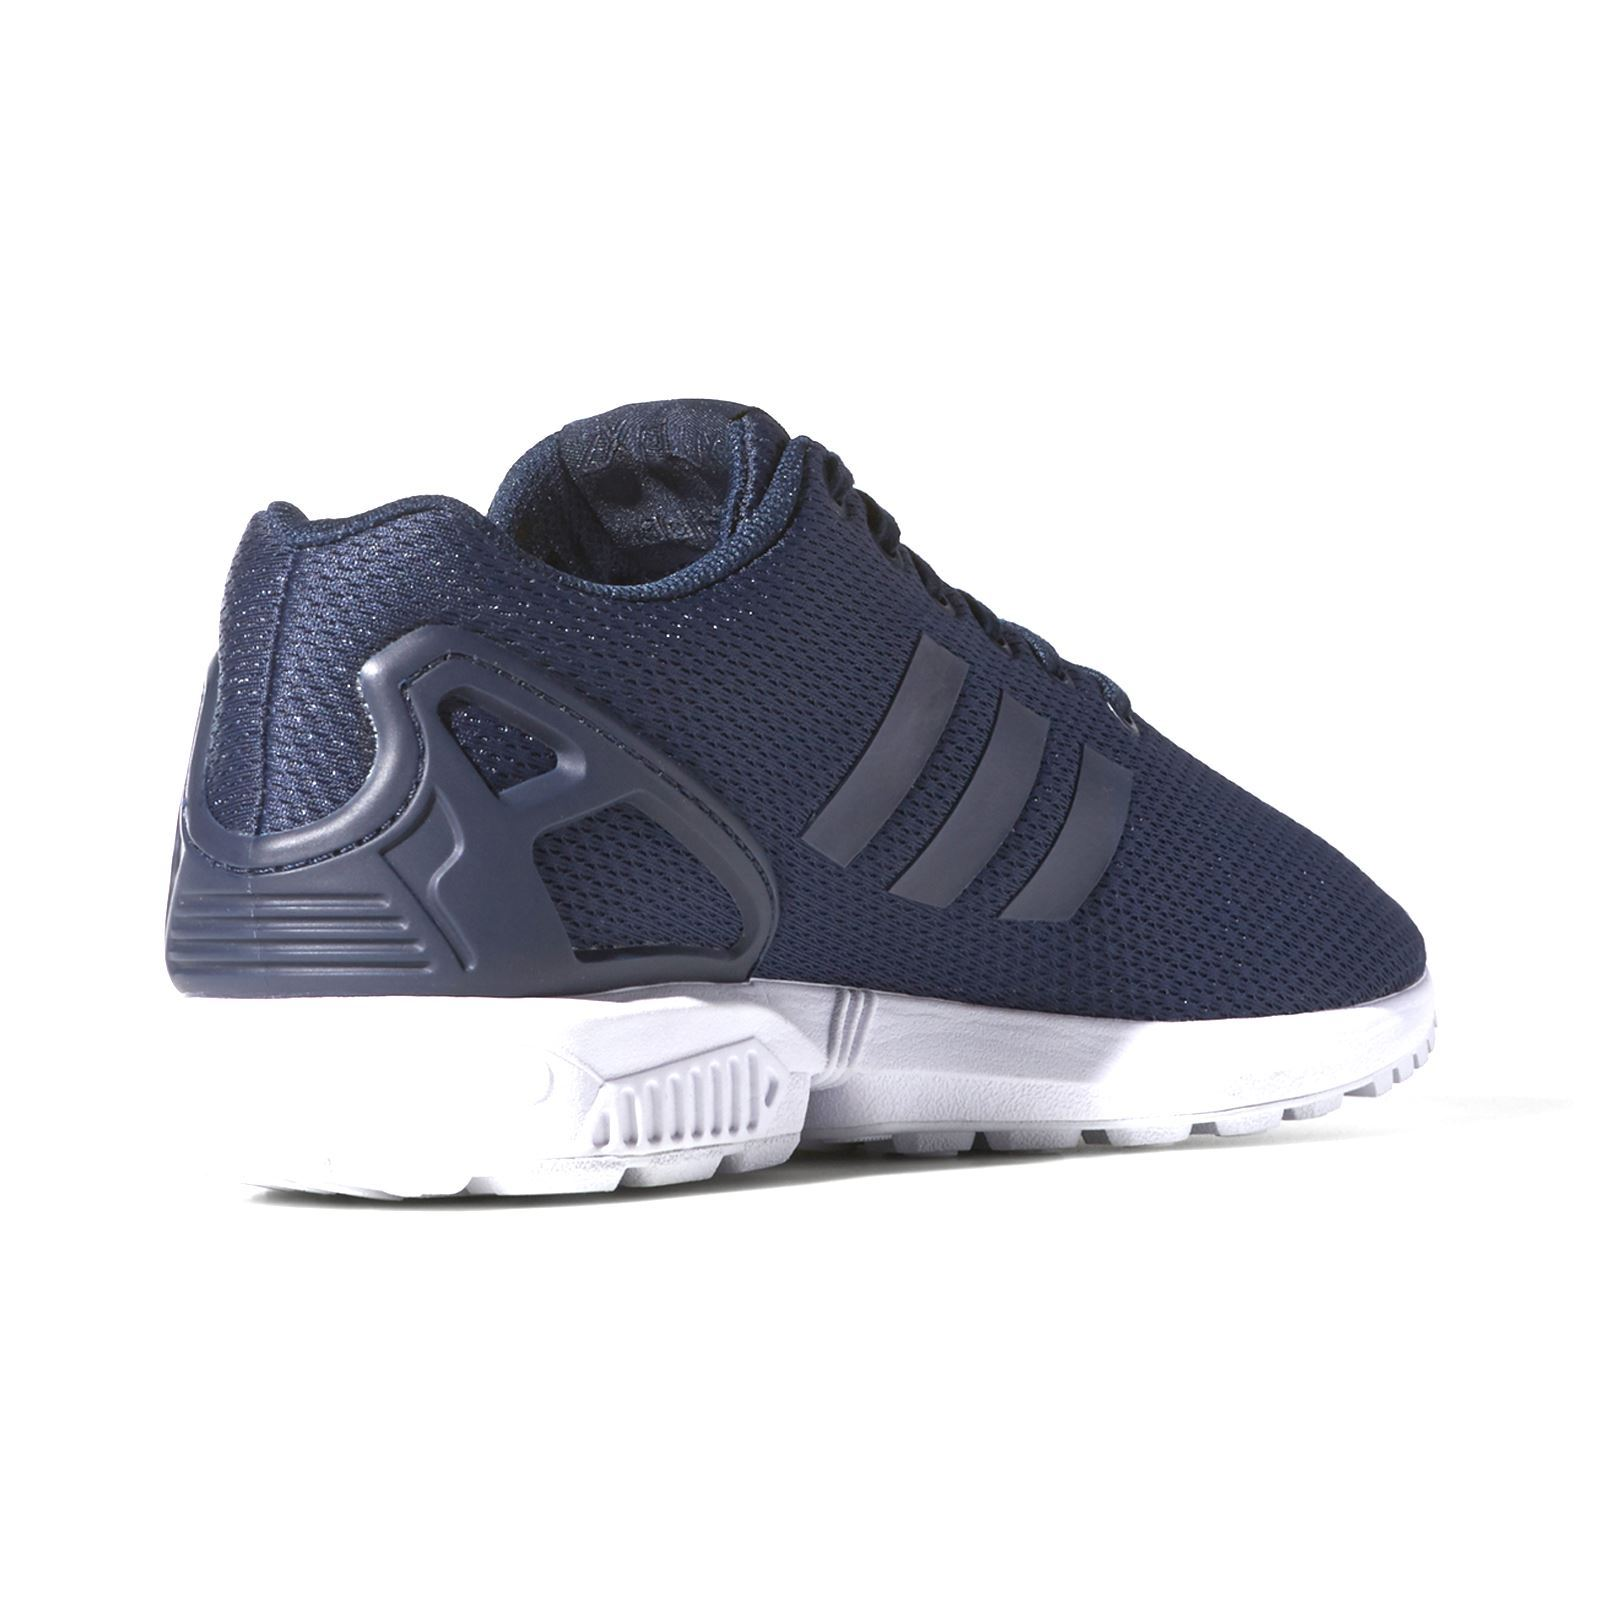 reputable site 5c8fa 763d9 coupon code for zx flux scarpe fc7fd 6e9b6